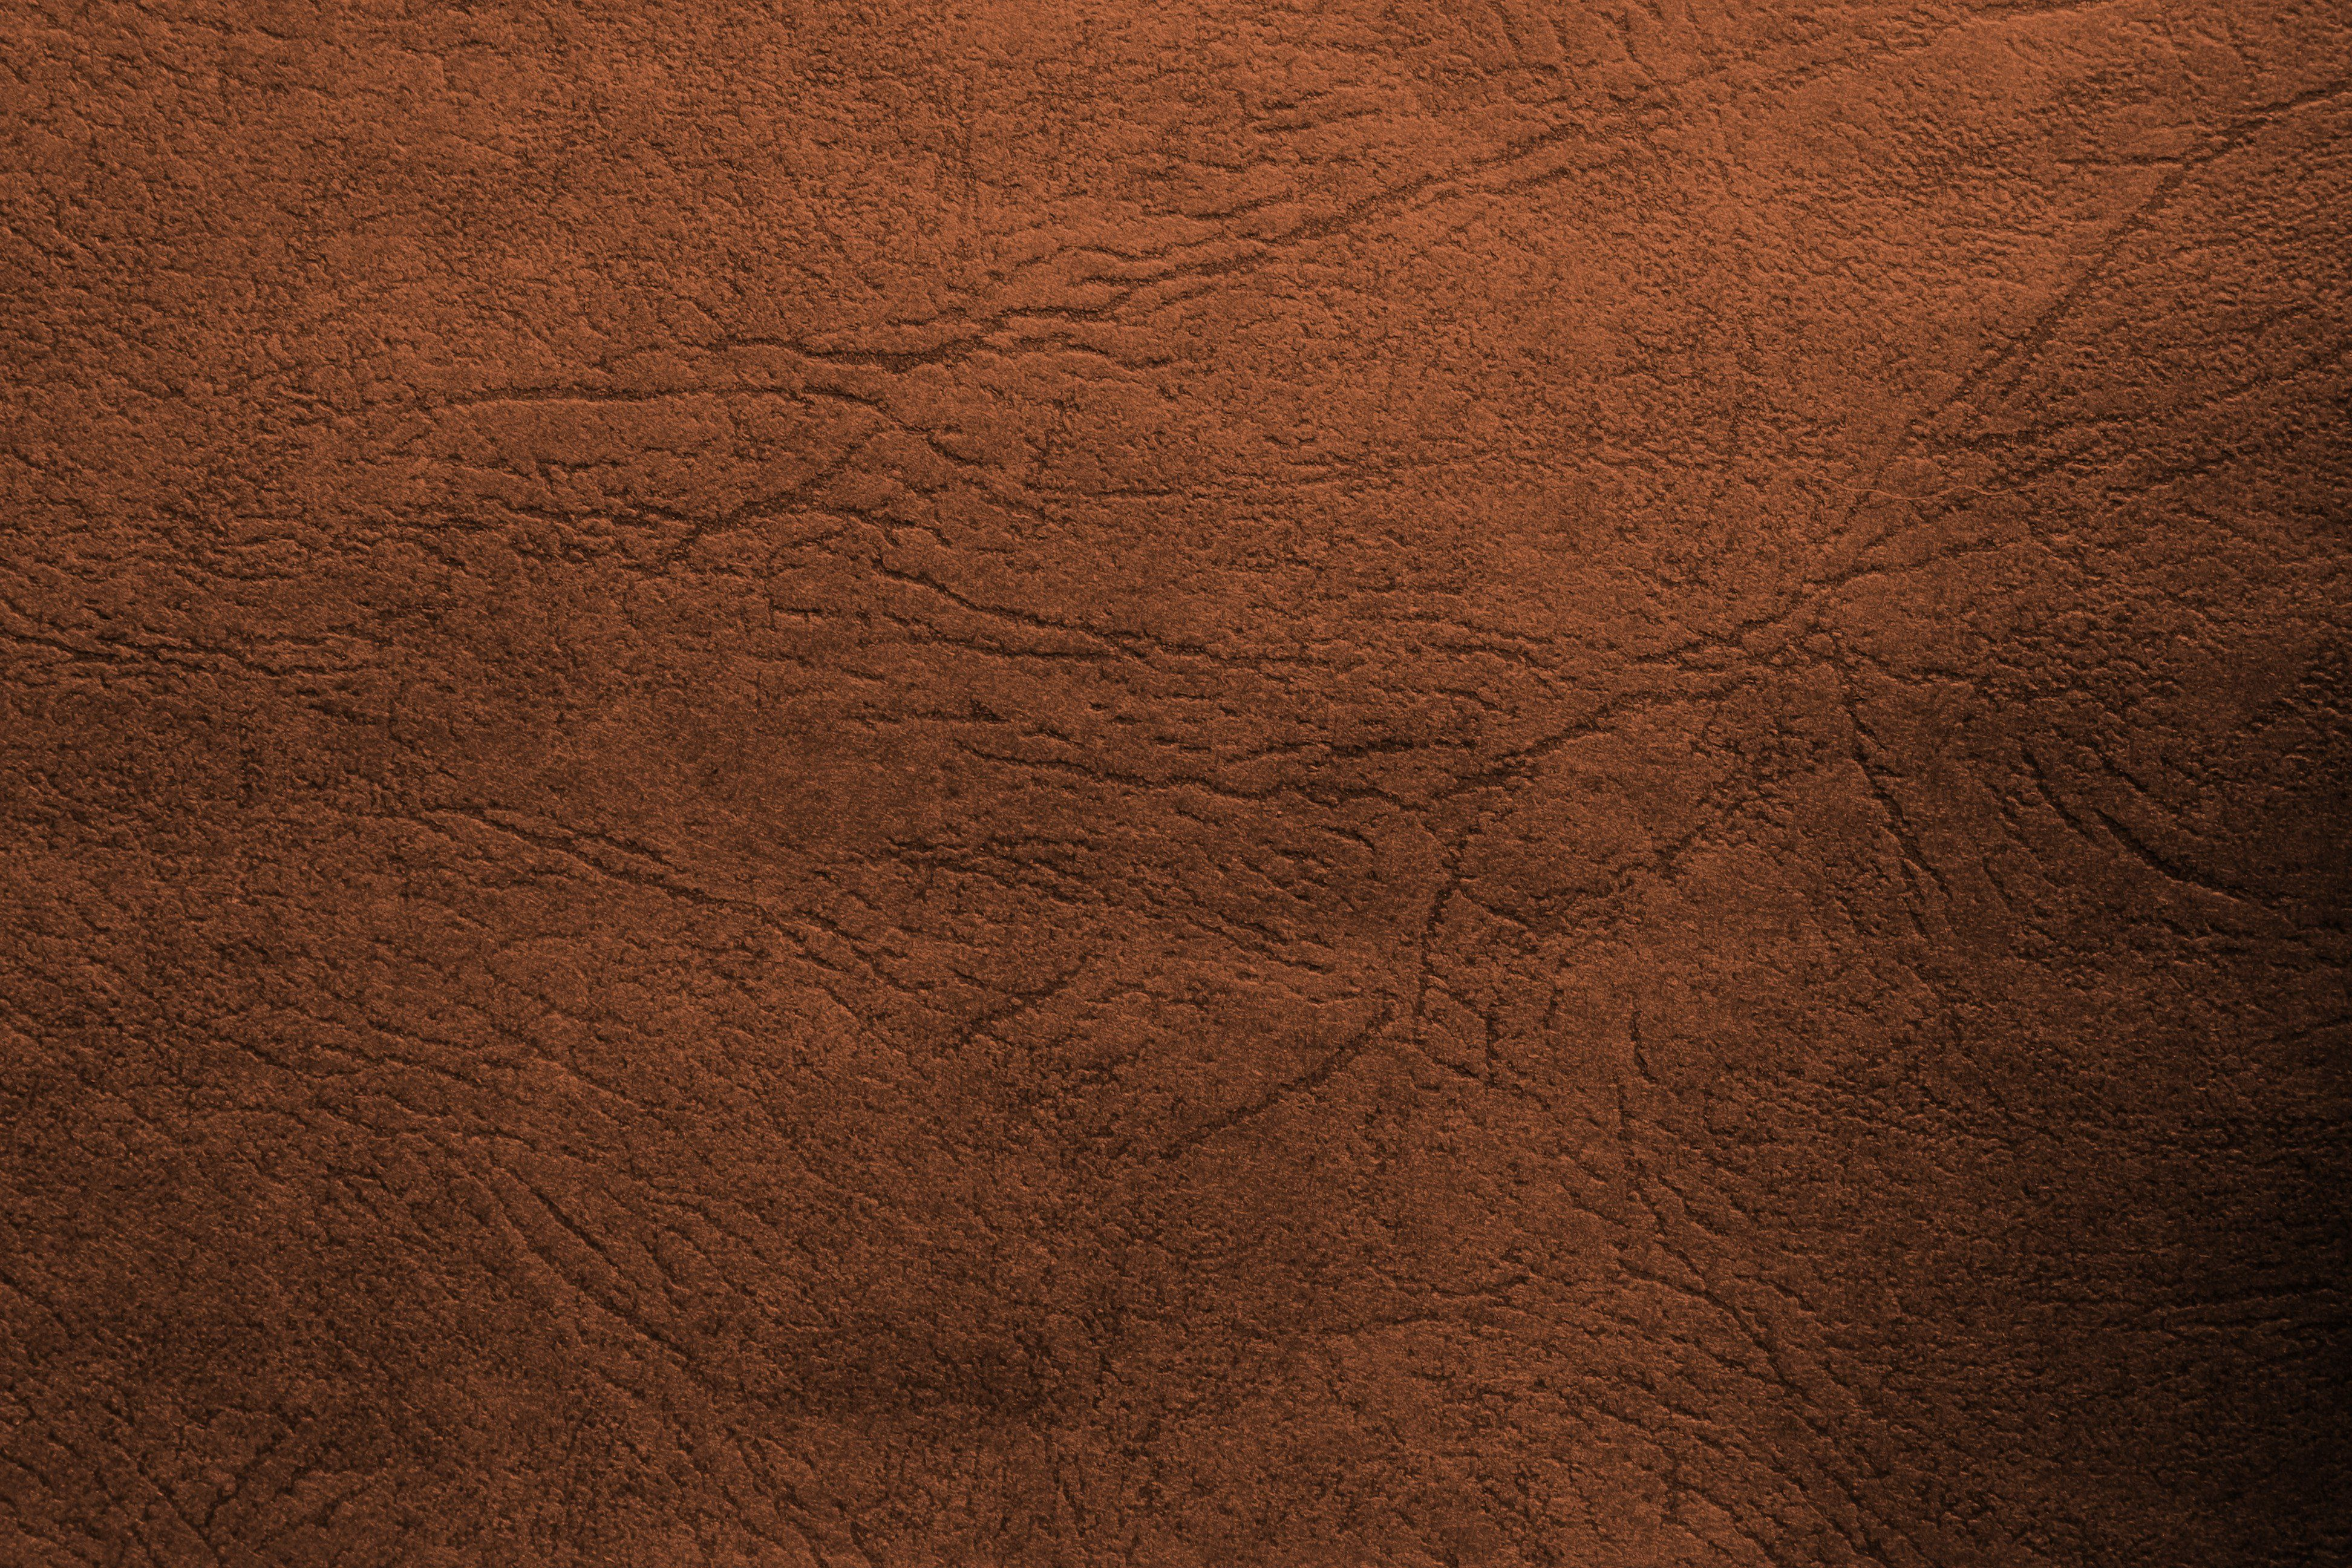 How To Tool Leather Brown Wallpaper Brown Leather Texture Leather Texture